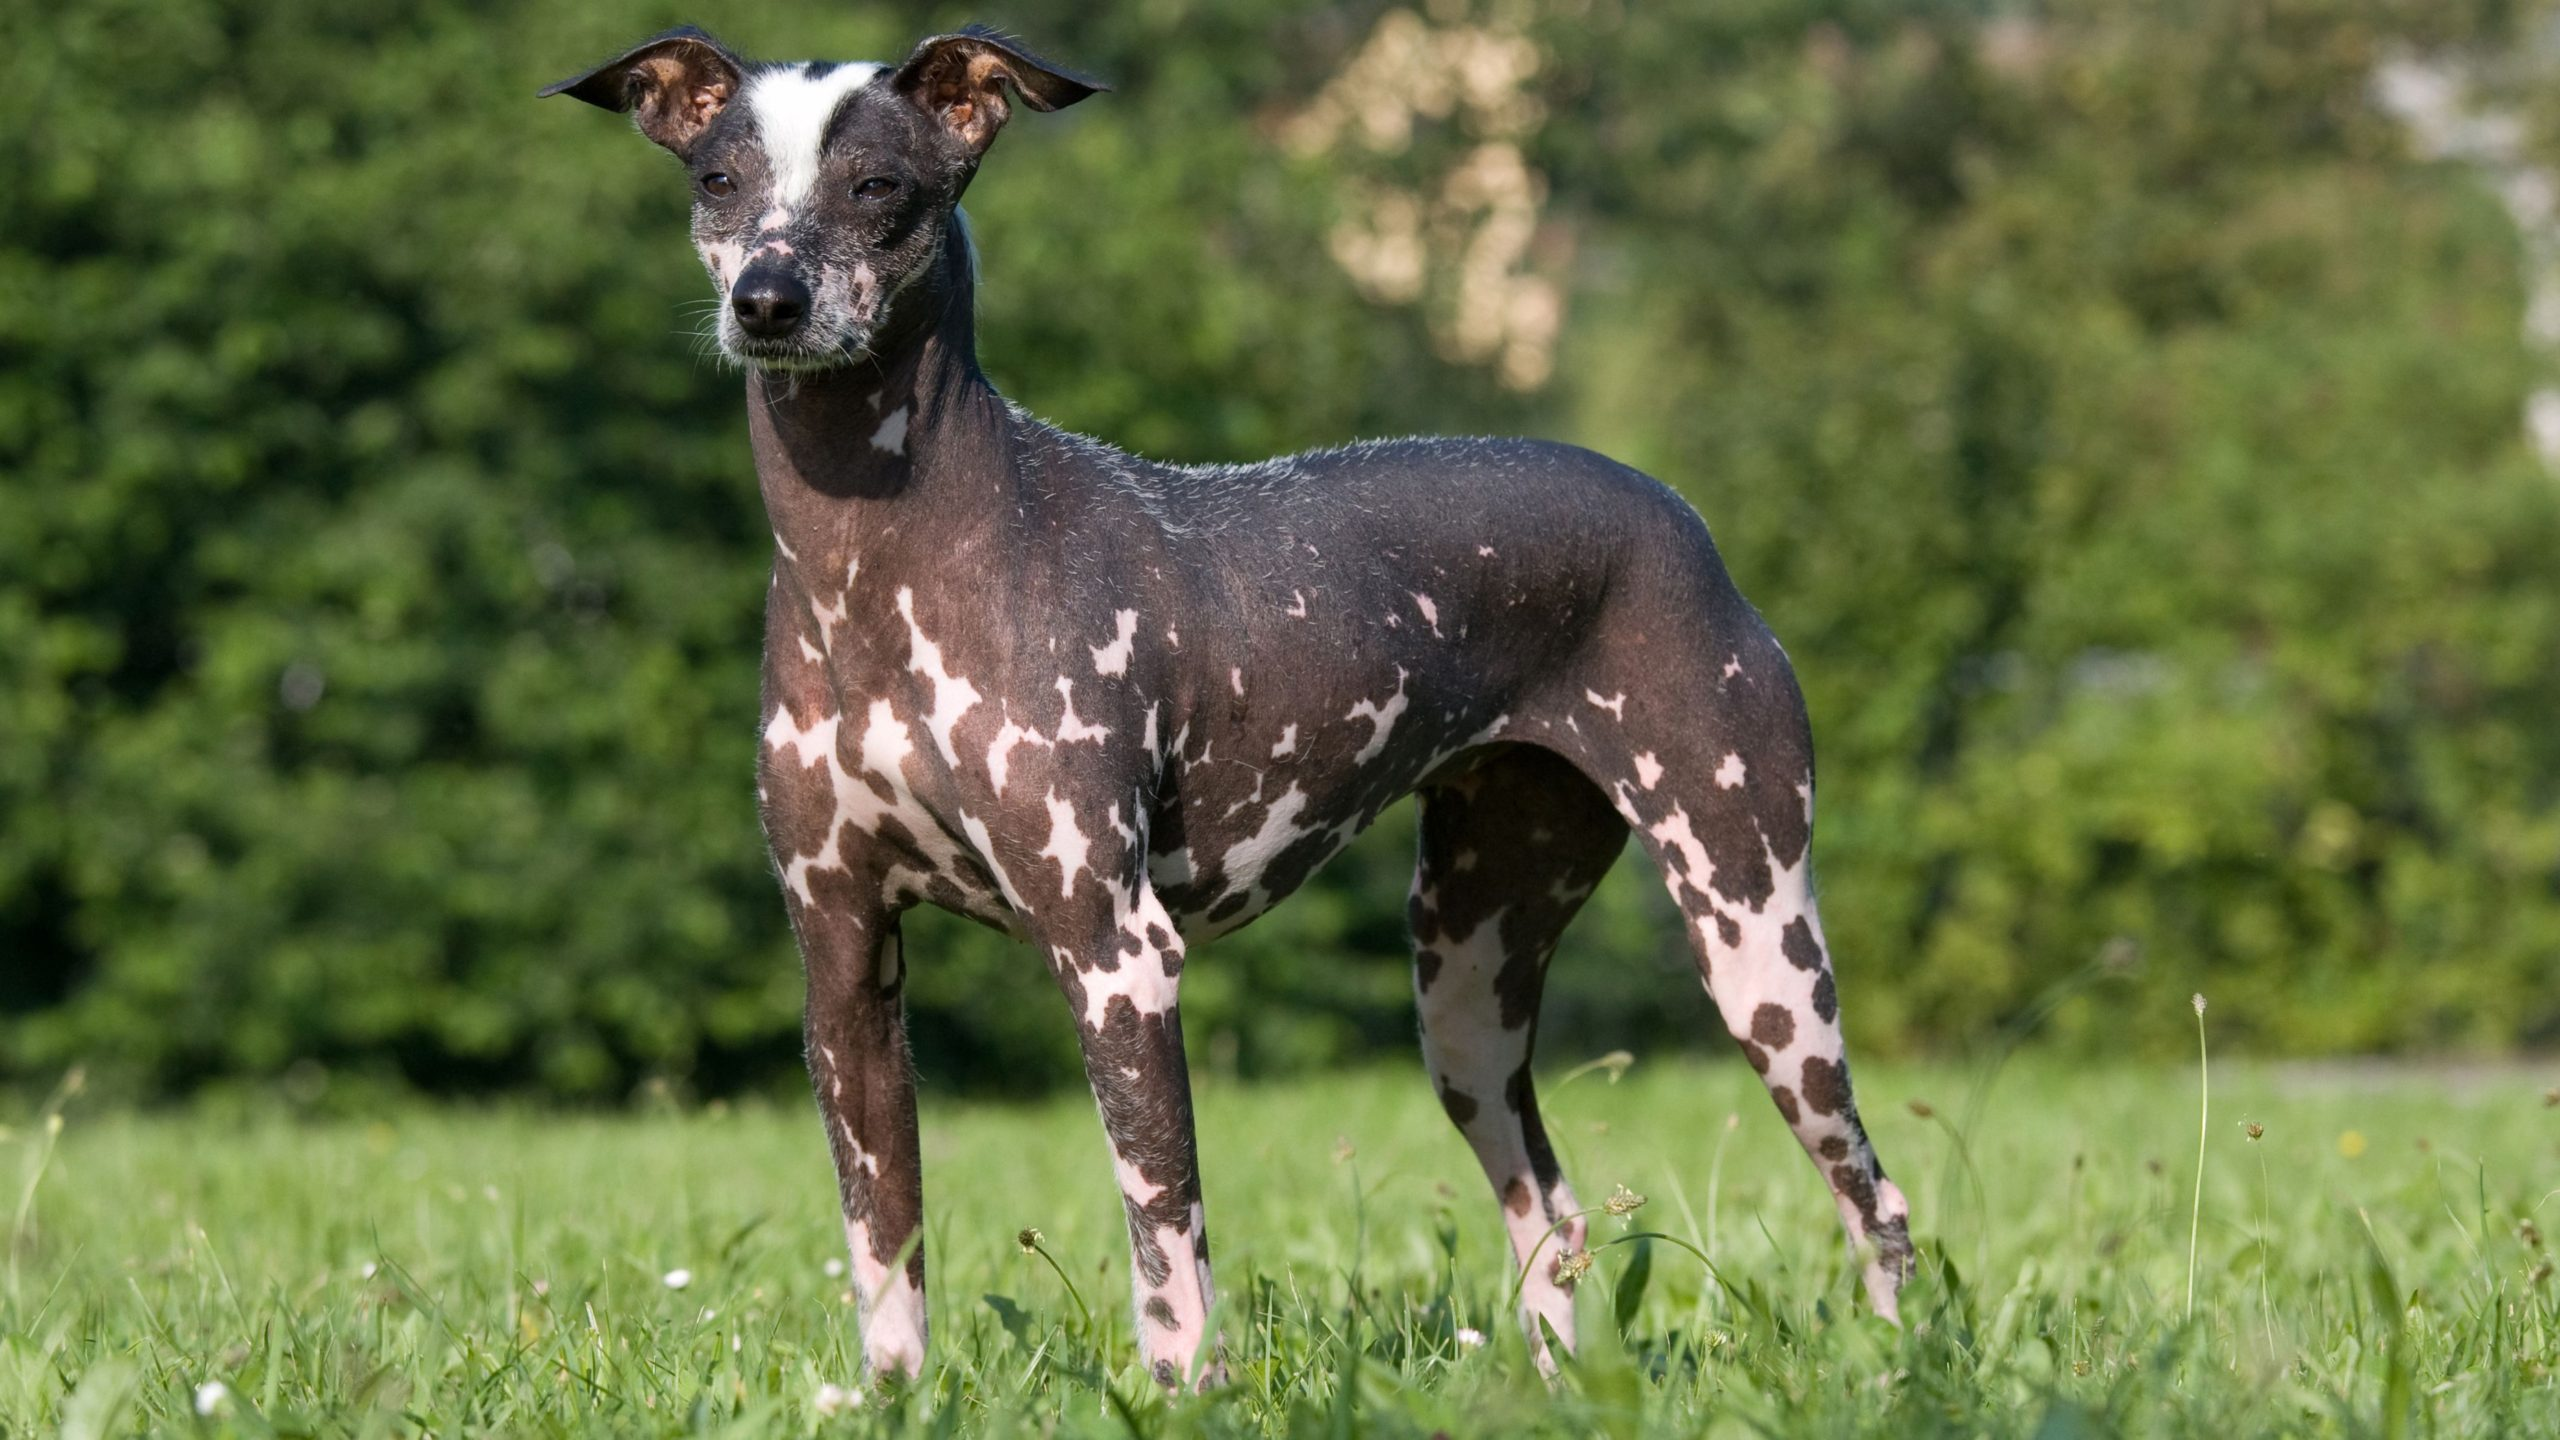 The-Peruvian-Inca-Orchid-scaled Top 10 Rarest Dog Breed on Earth That Are Unique